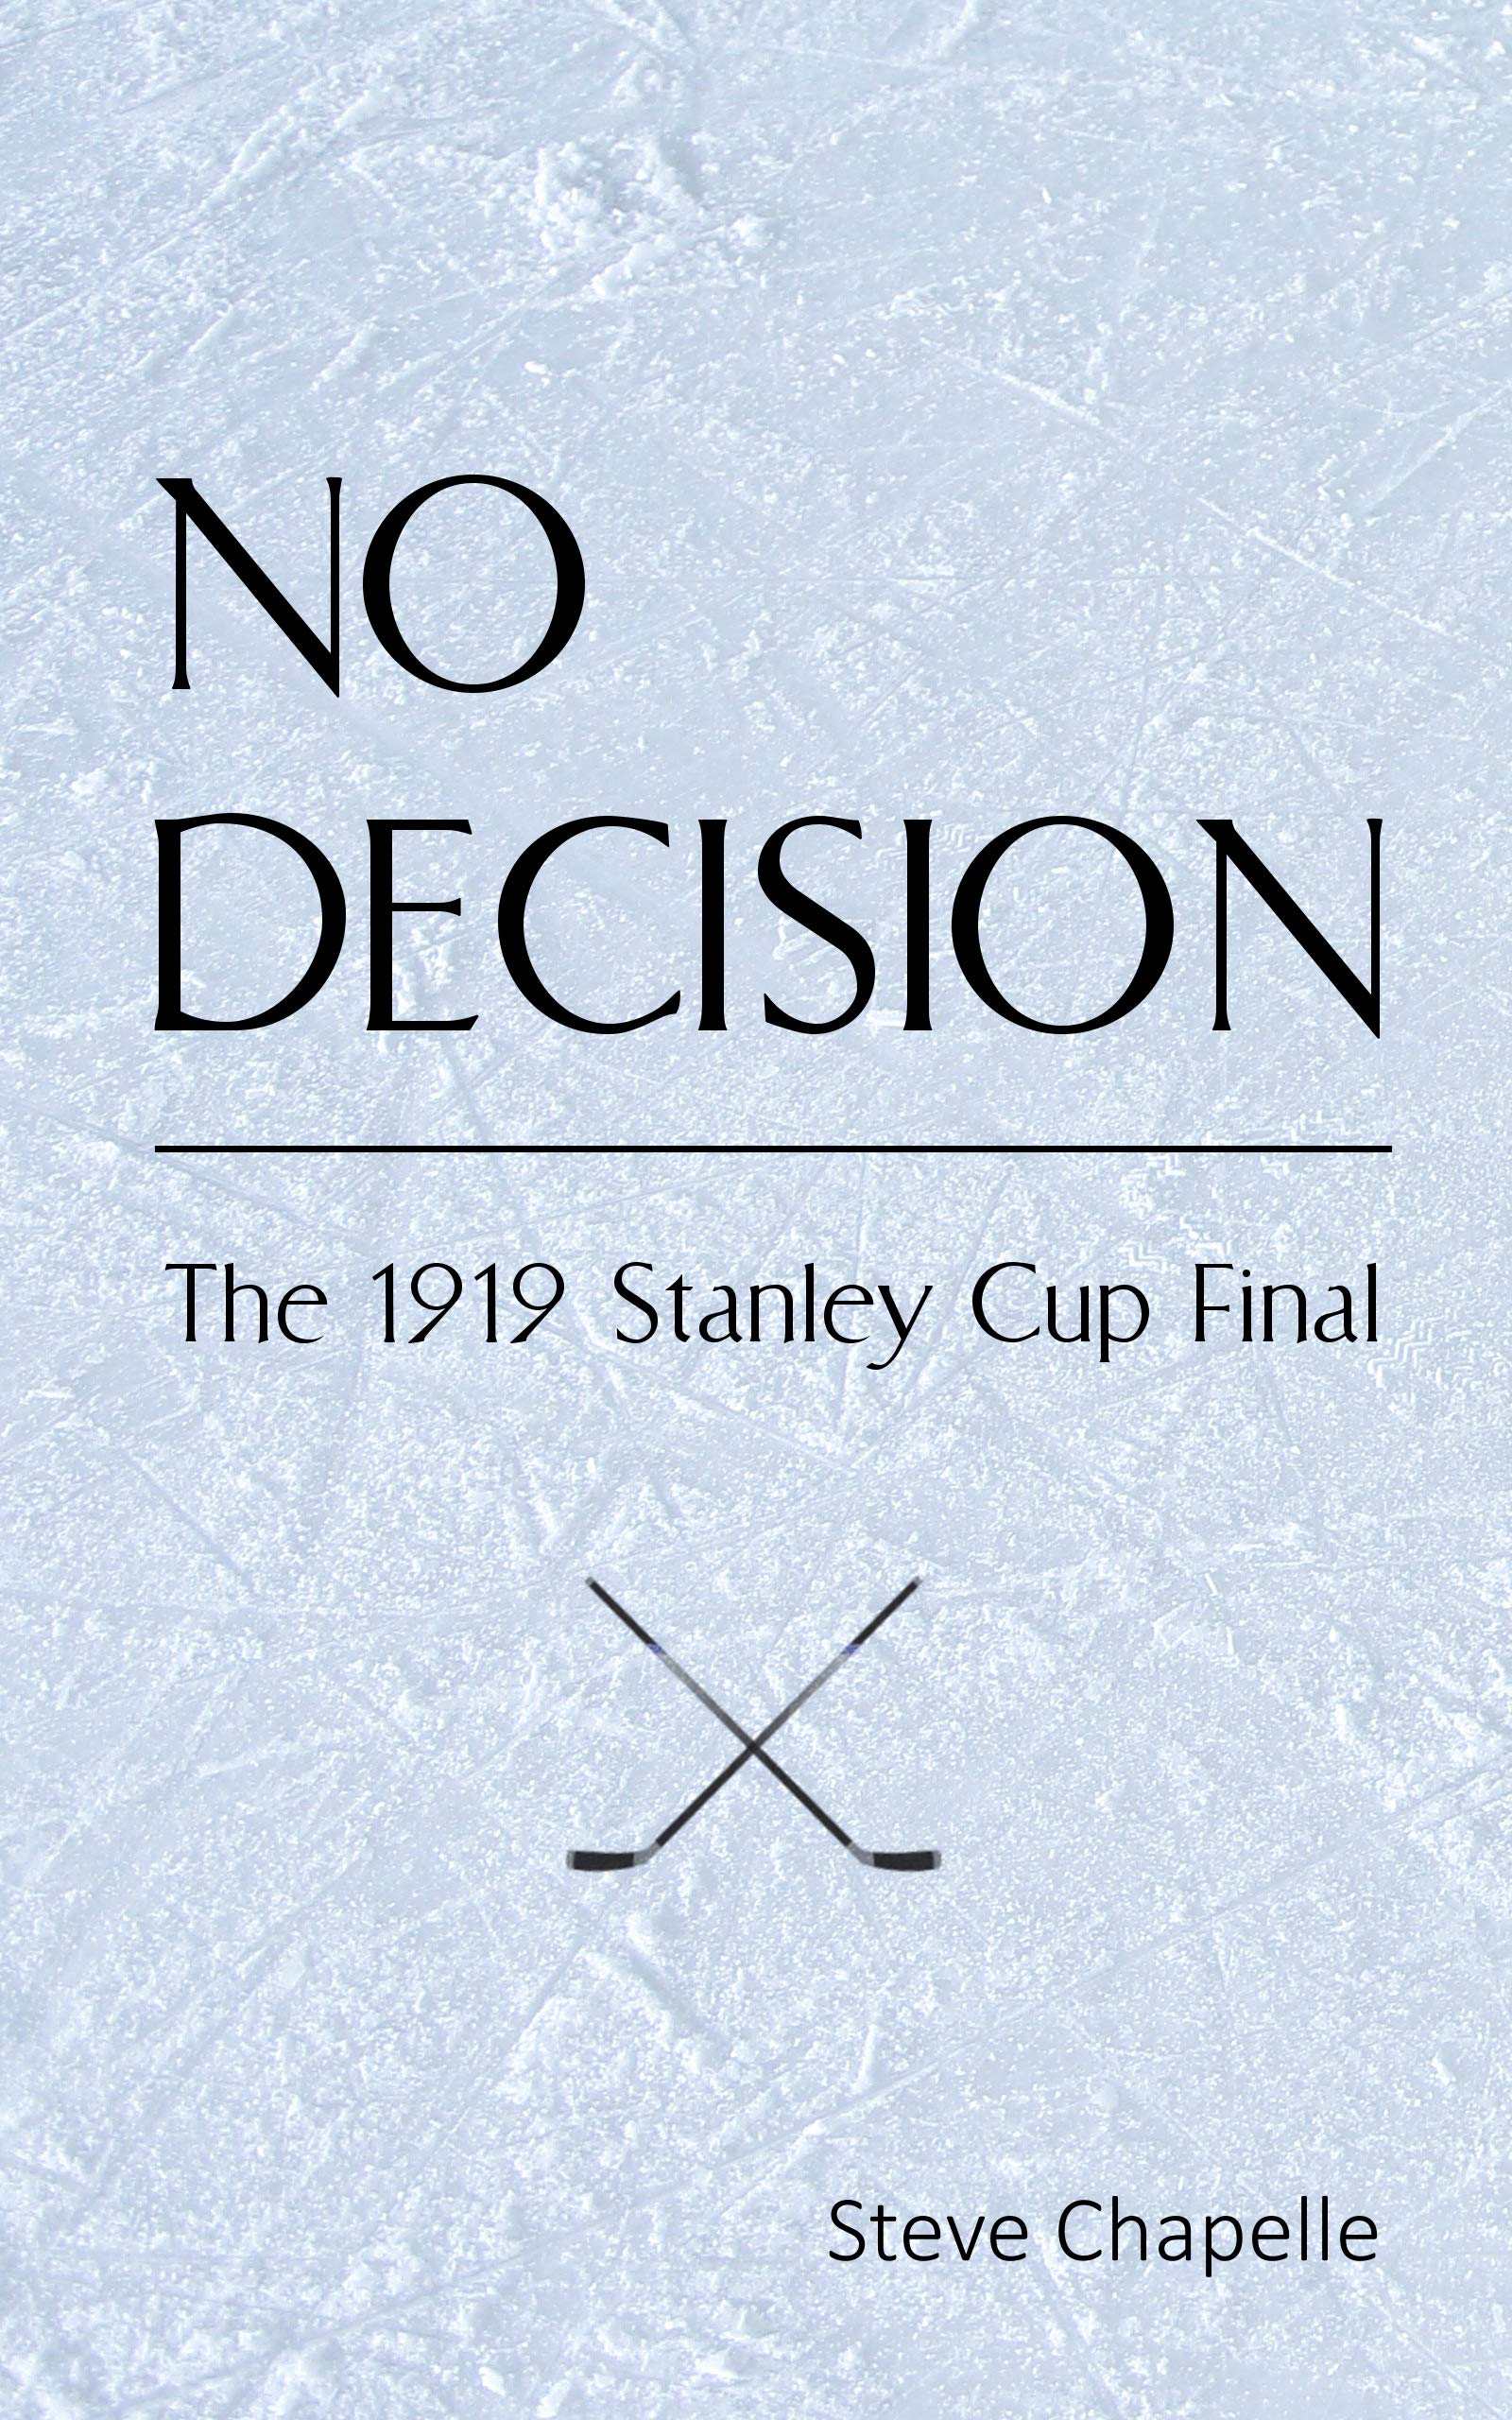 Download NO DECISION: The 1919 Stanley Cup Final (English Edition)